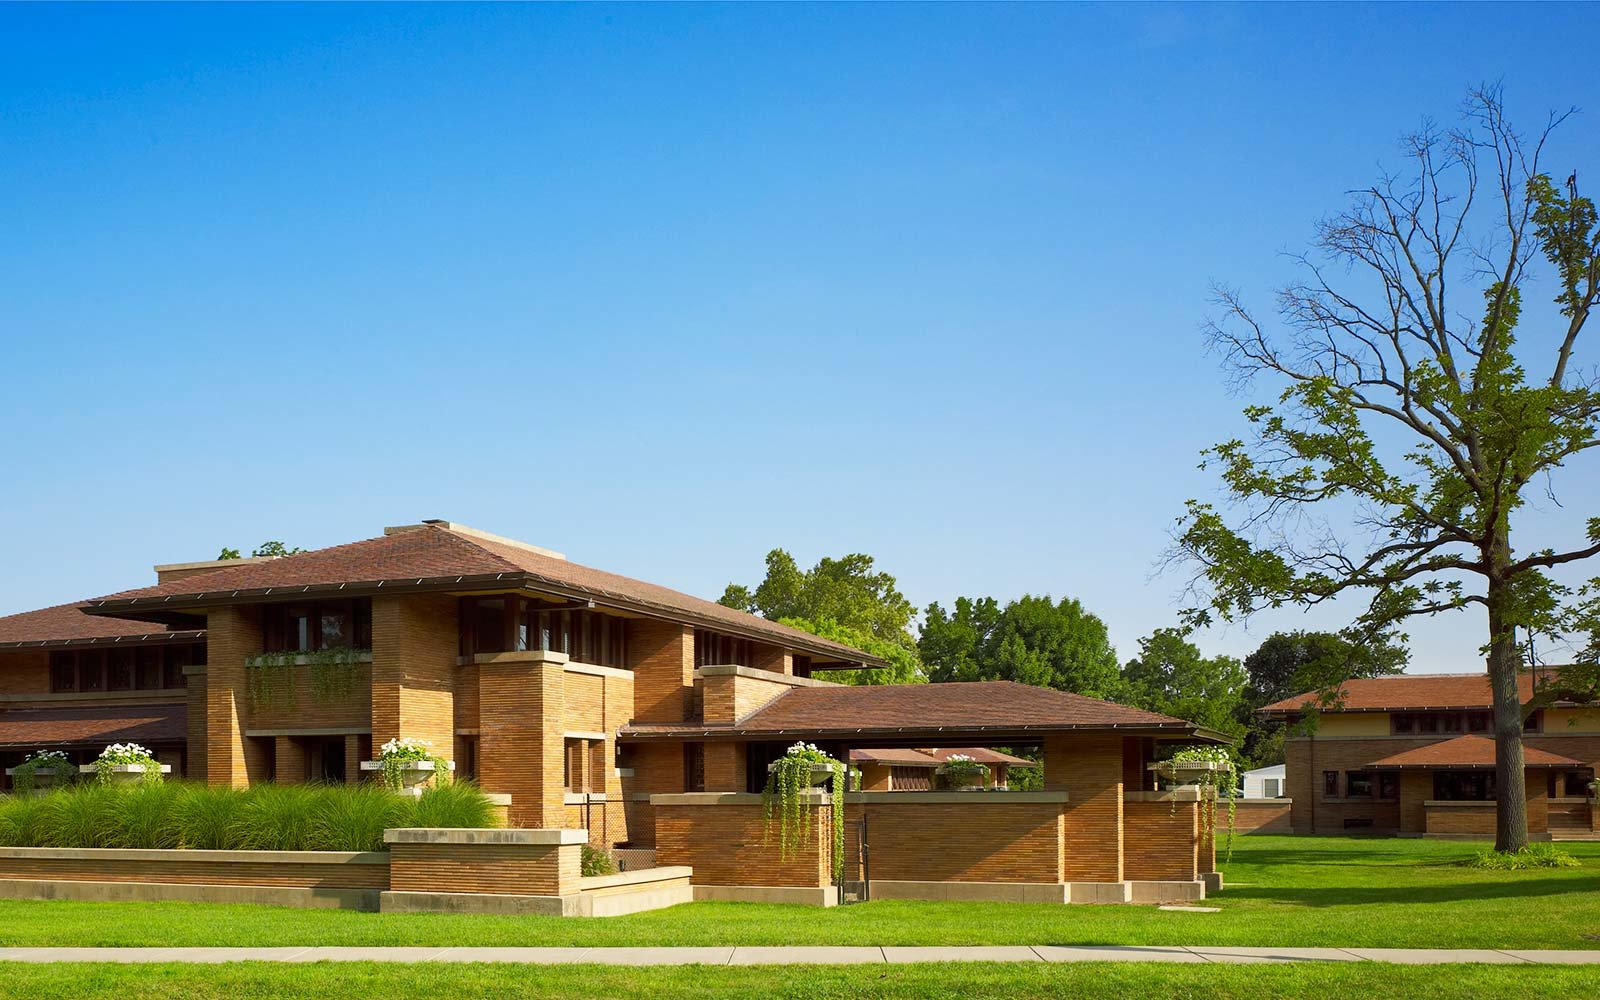 10 MustSee Houses Designed by Architect Frank Lloyd Wright